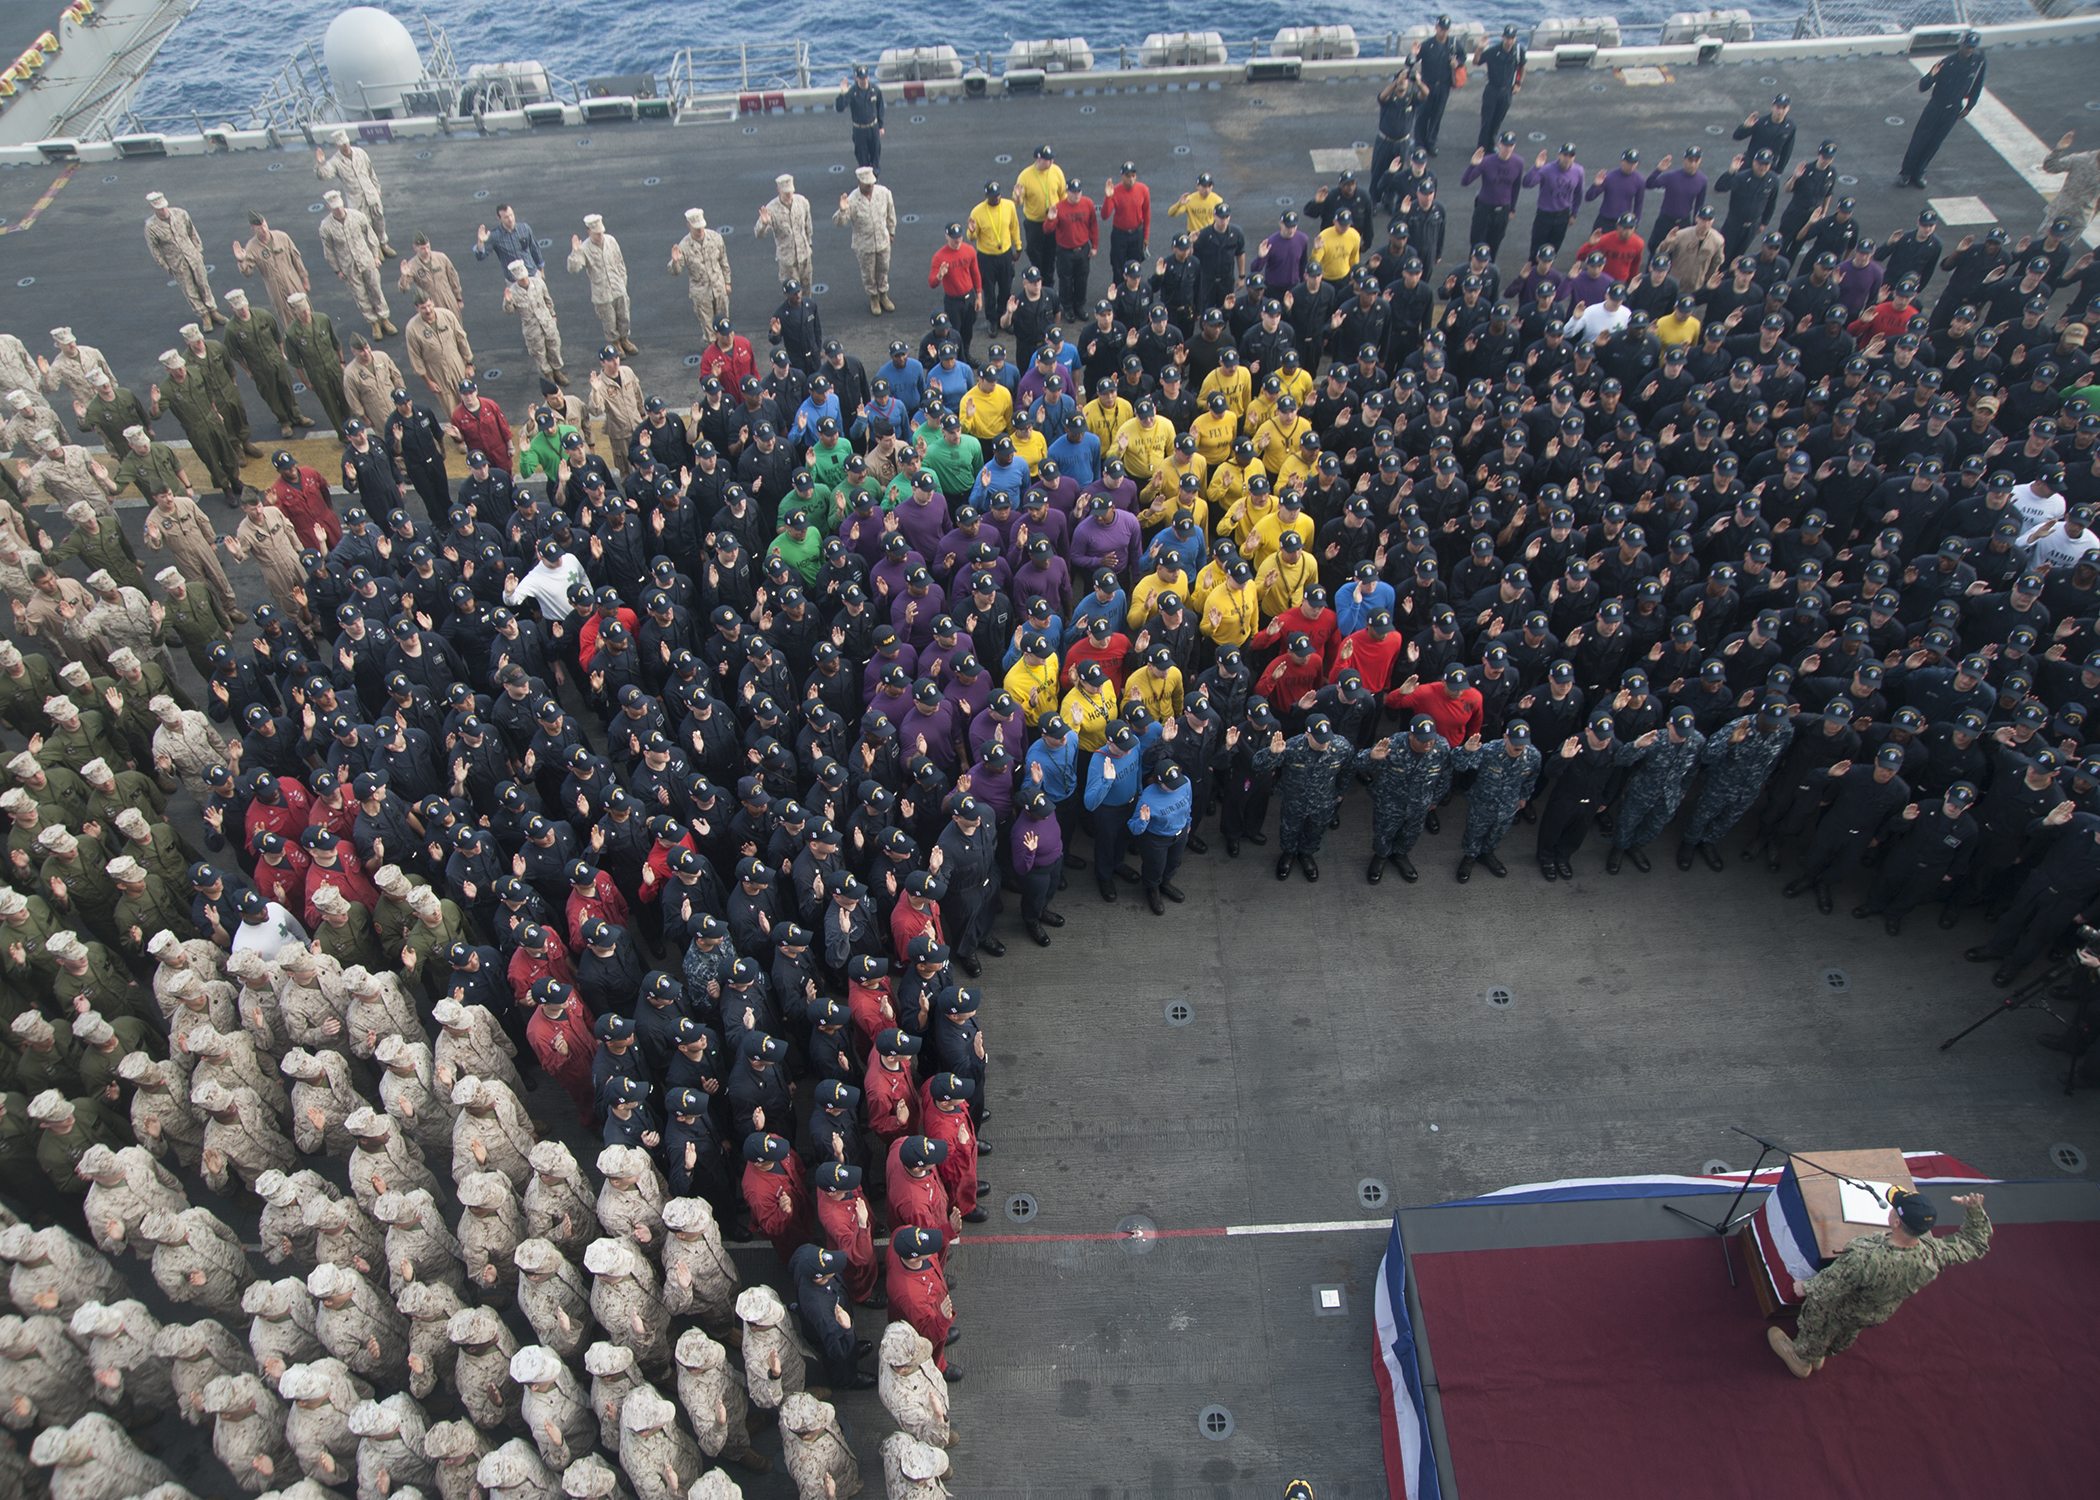 Vice Chief of Naval Operations Adm. Bill Moran delivers the oath of enlistment to Sailors and Marines aboard the amphibious assault ship USS Makin Island (LHD-8) on Dec. 11, 2016. US Navy Photo